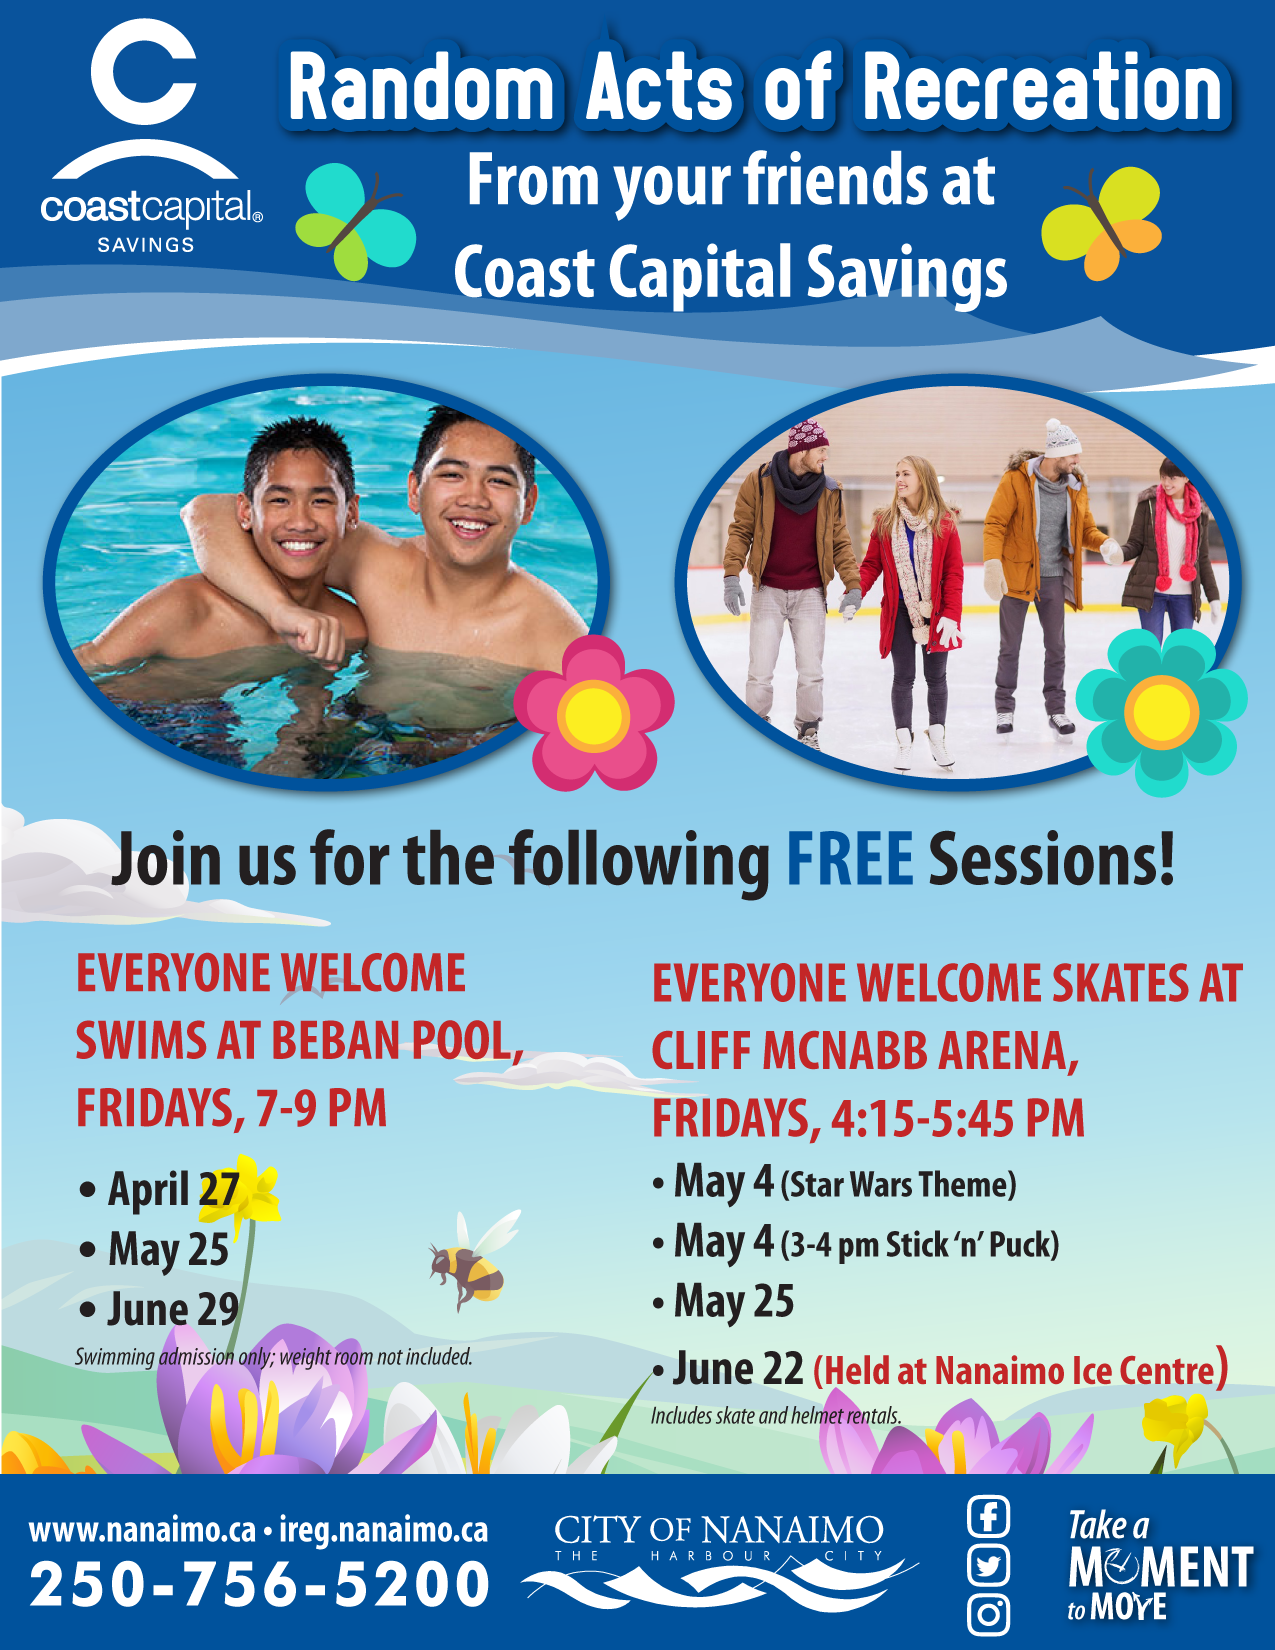 freeswimming_skating_coastcapitalsavings_spring REVISED